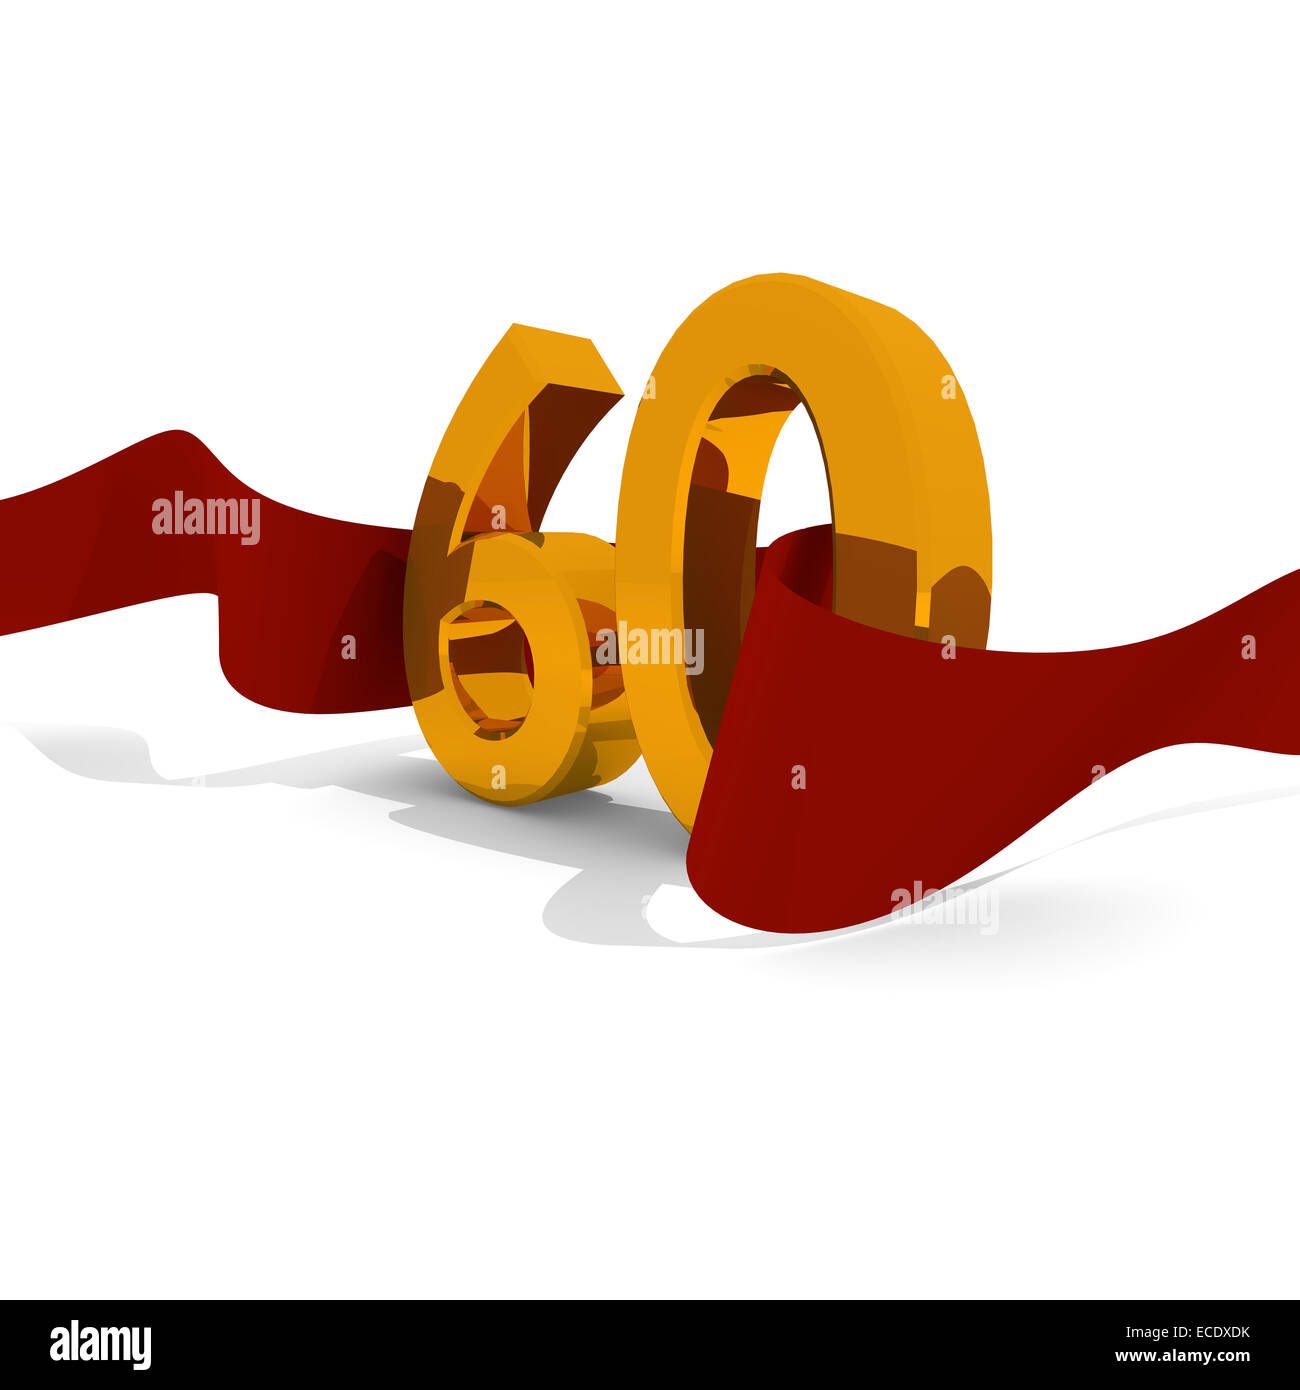 Golden Number 60 Stock Photos & Golden Number 60 Stock Images - Alamy